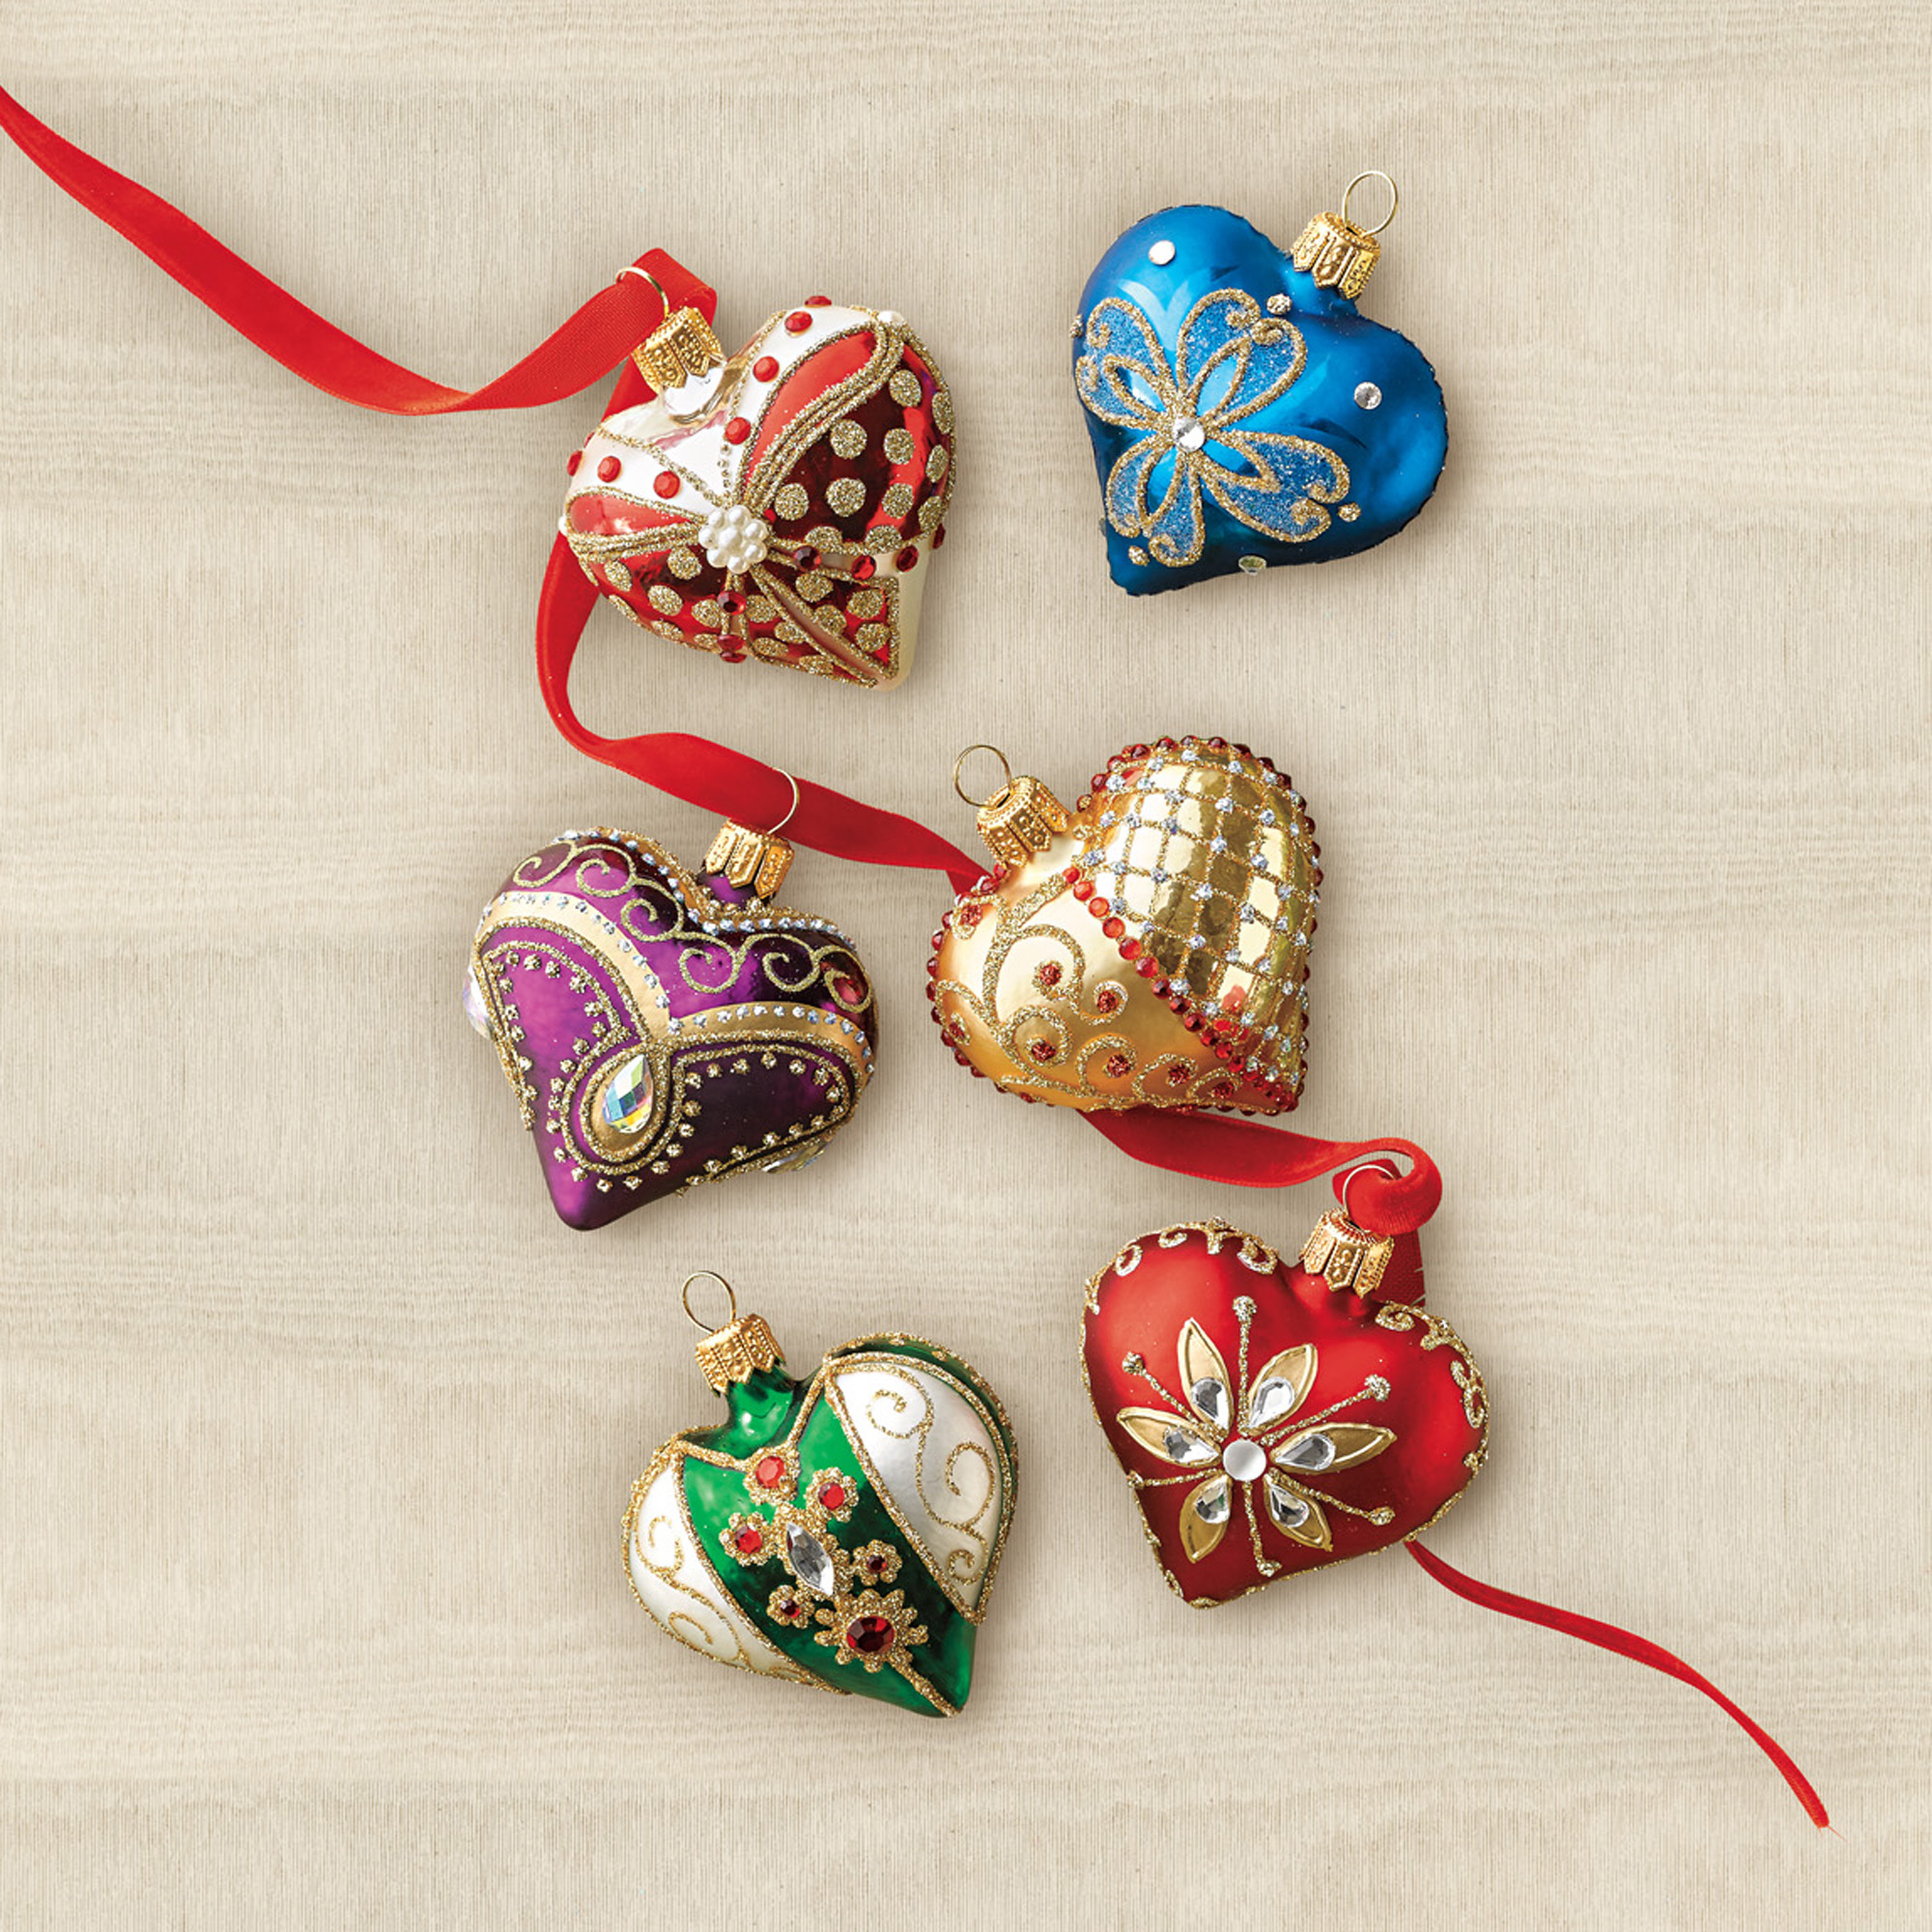 Embellished Heart Christmas Ornaments